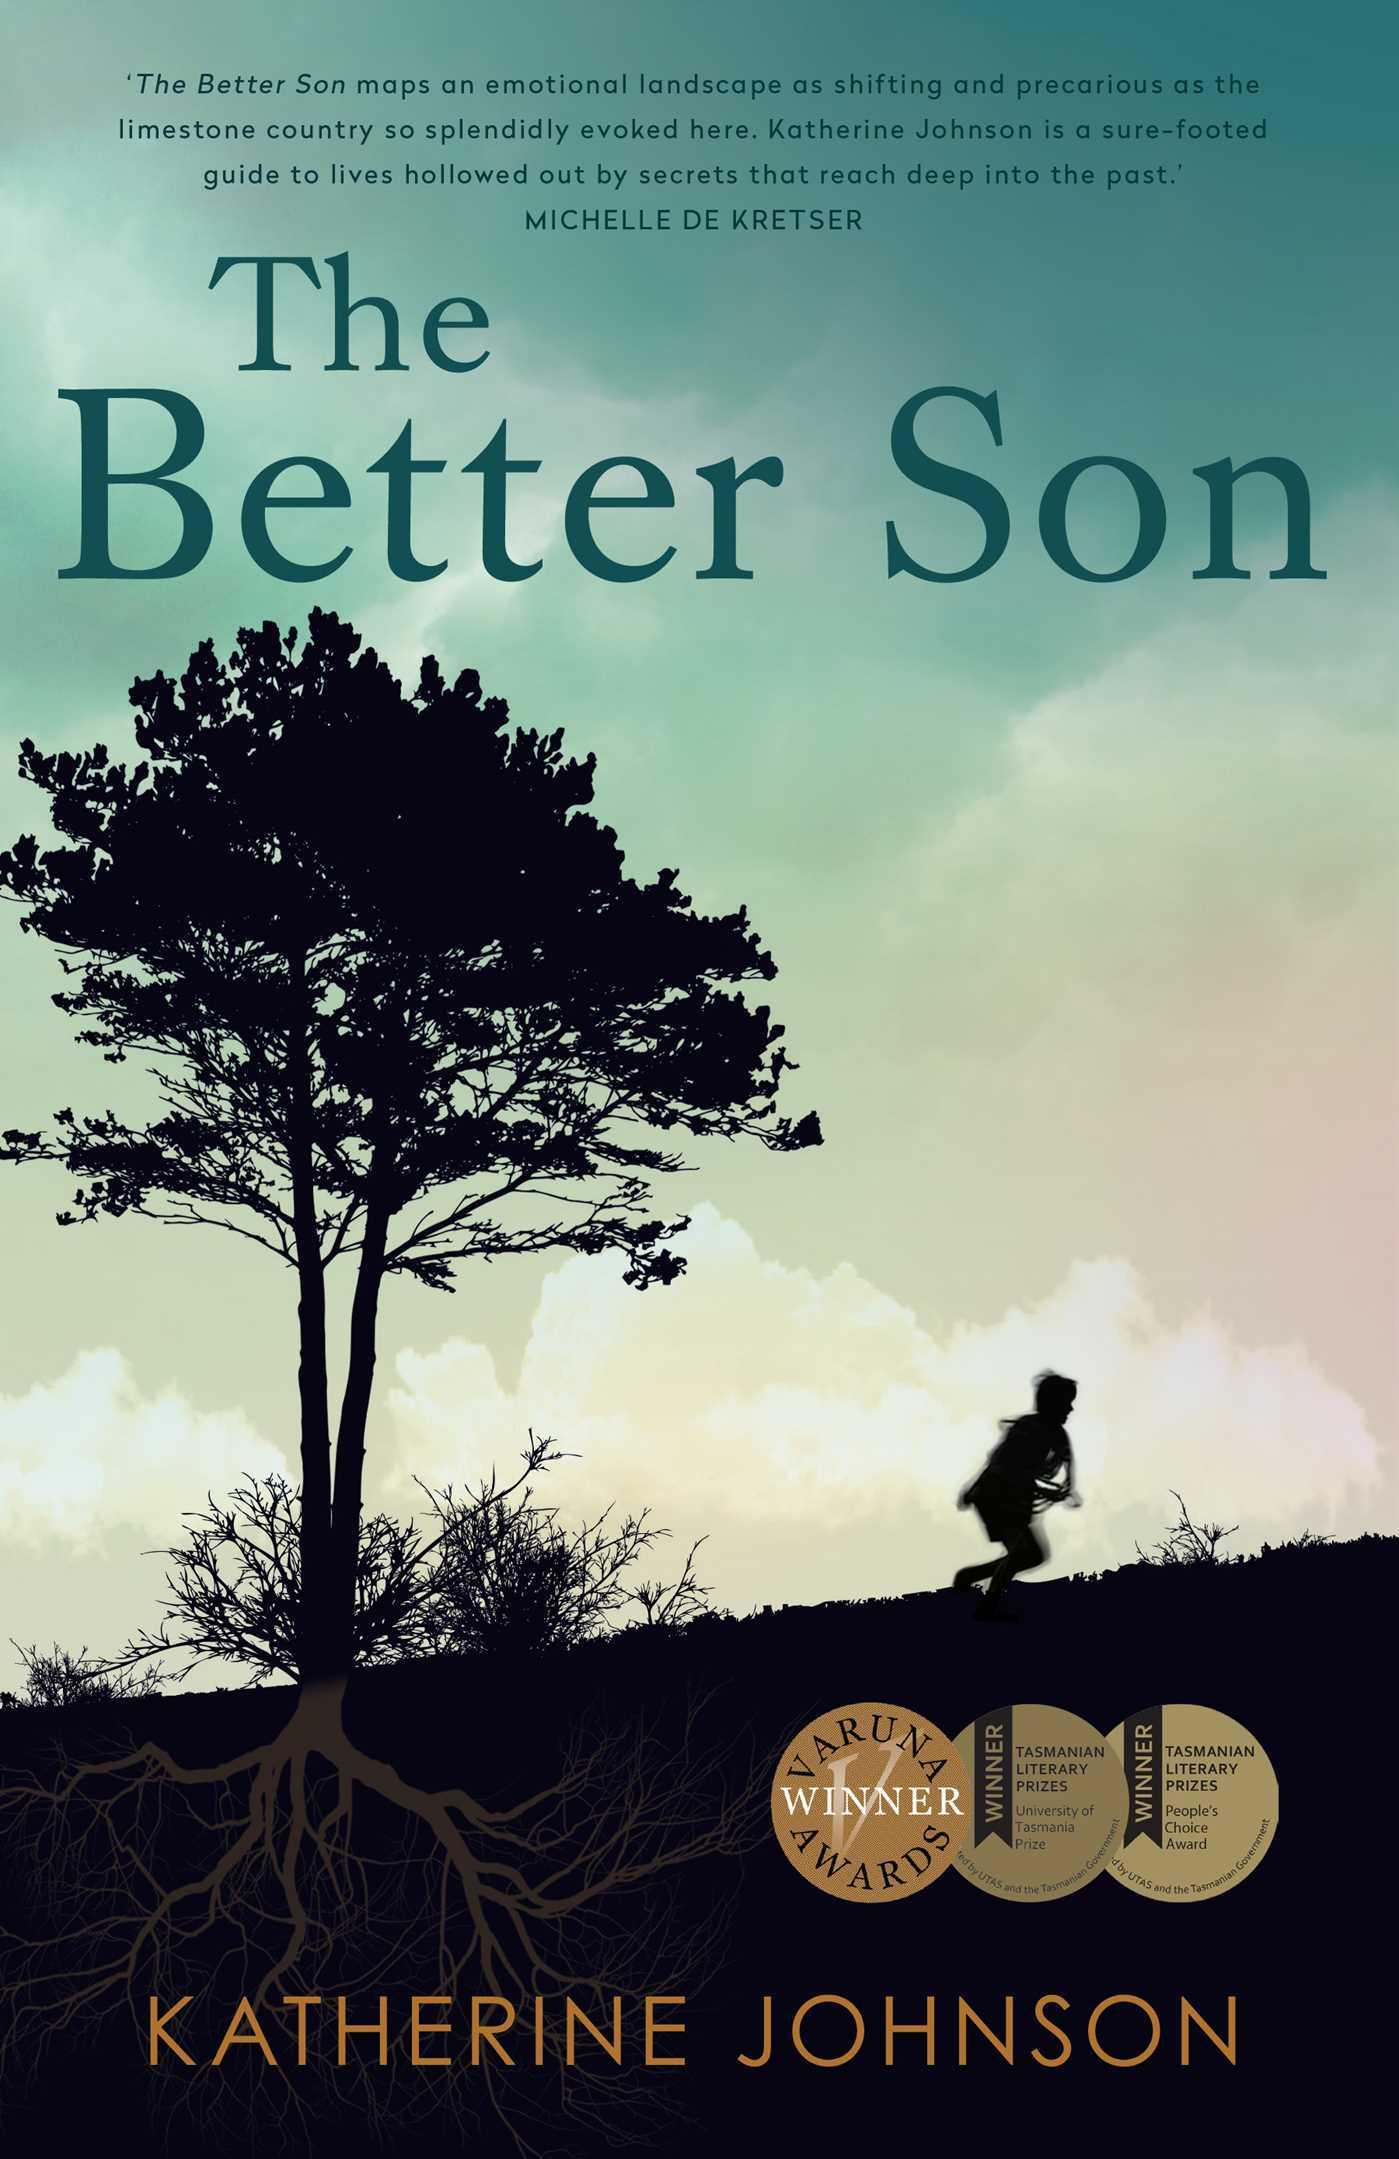 The BetterSon